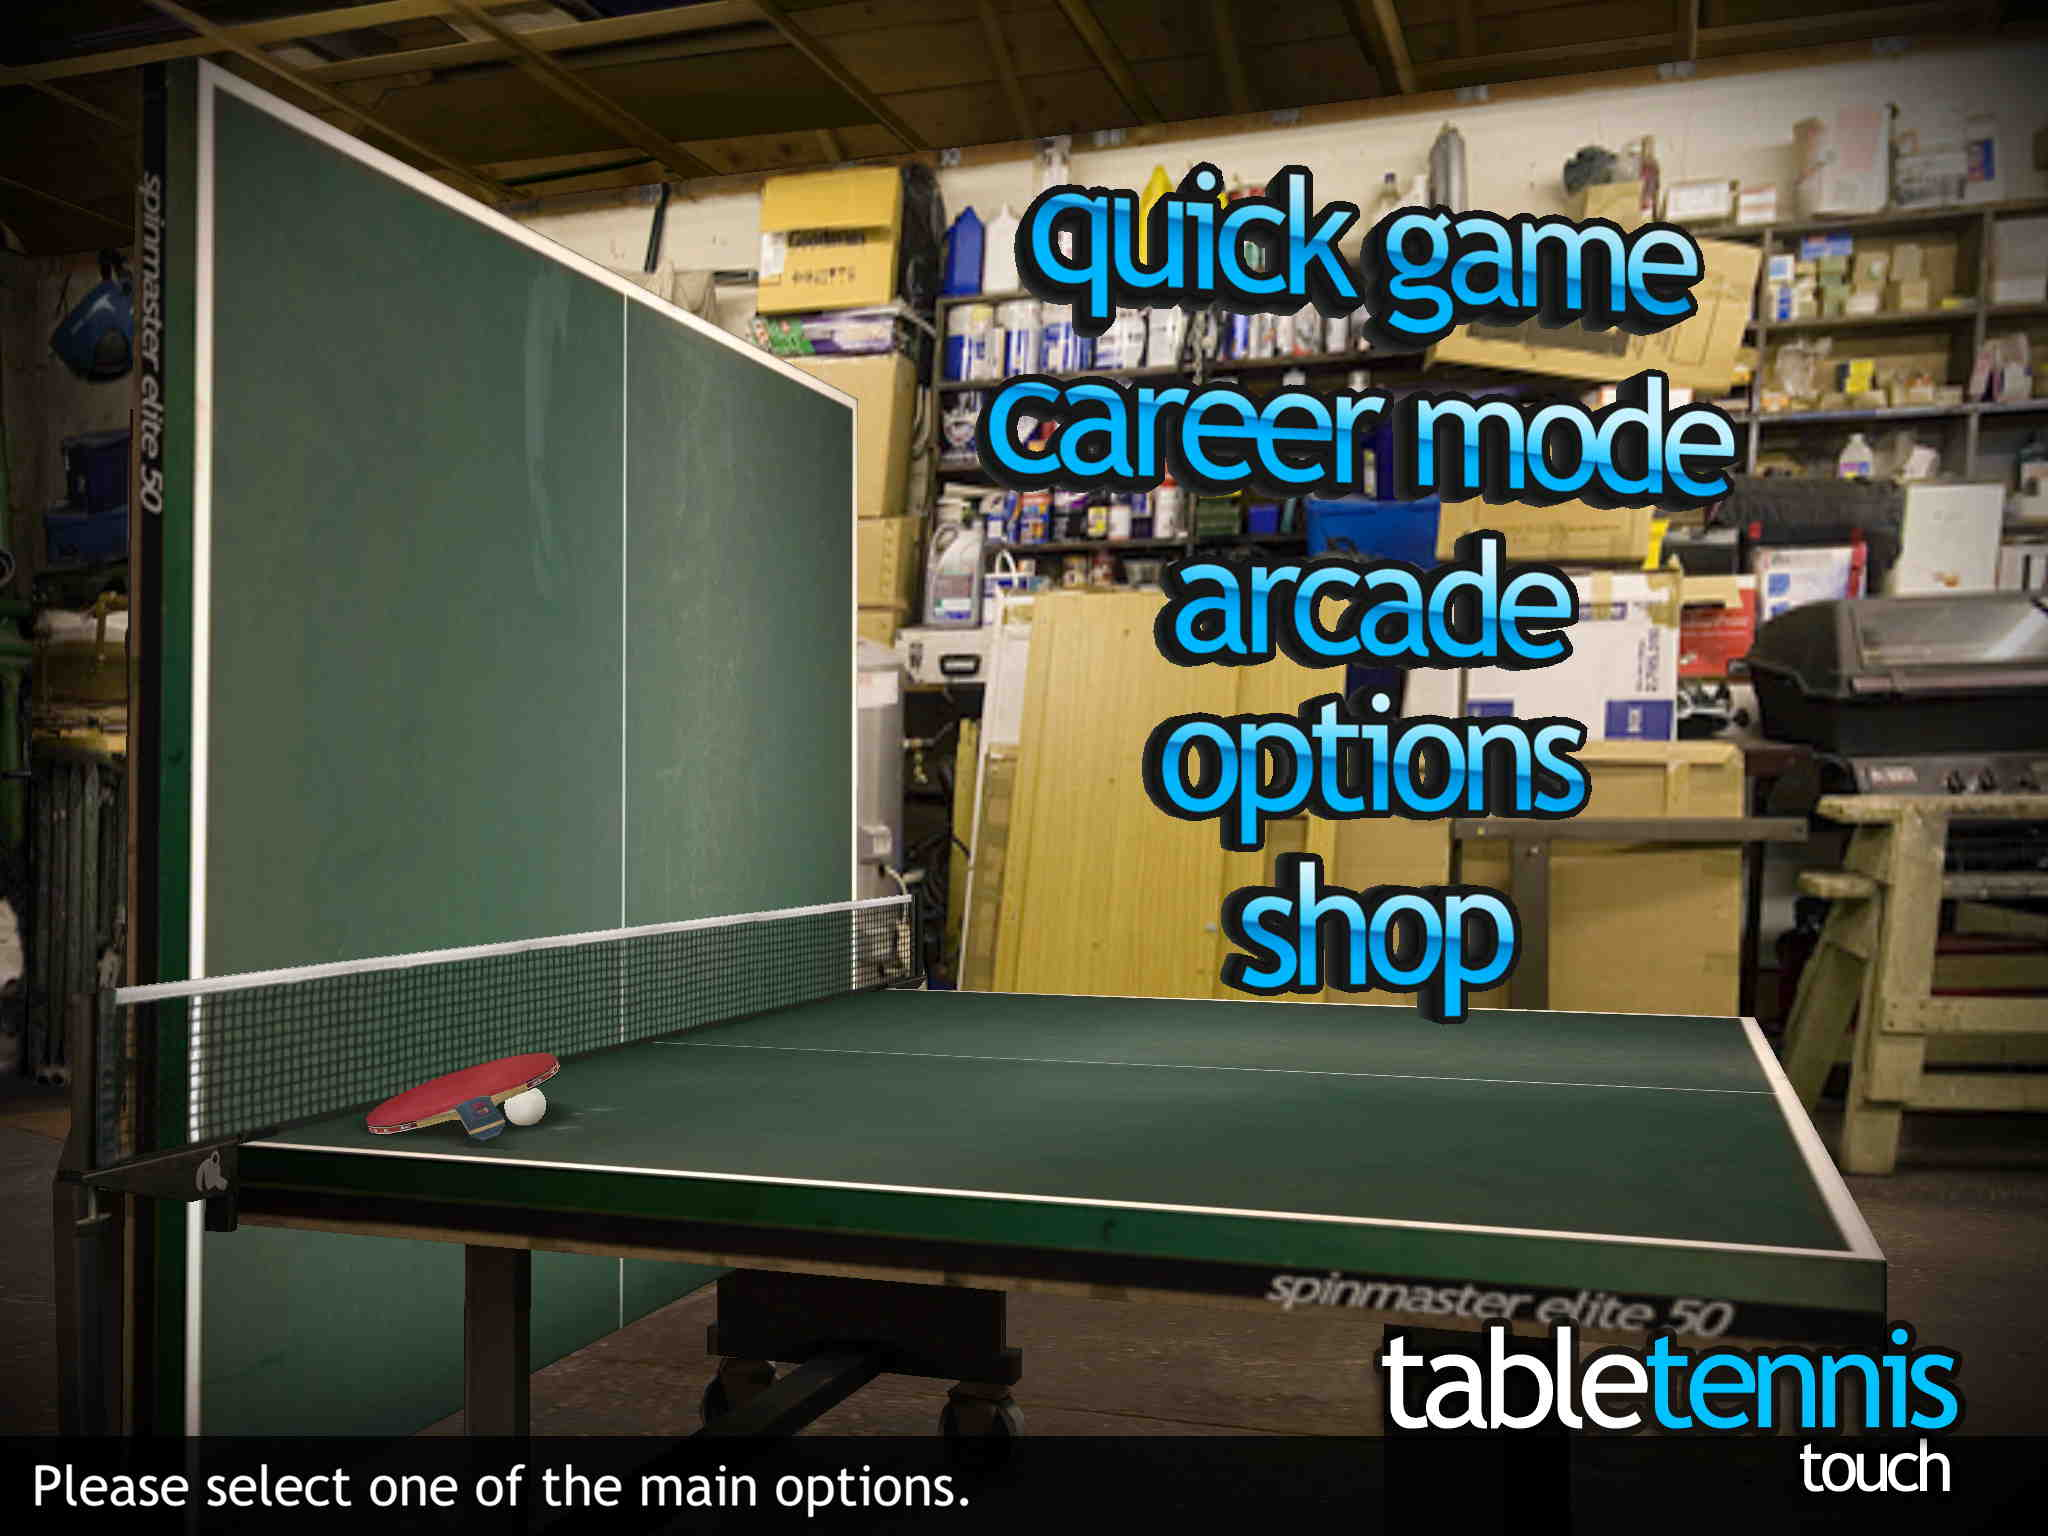 TableTennisTouch_01